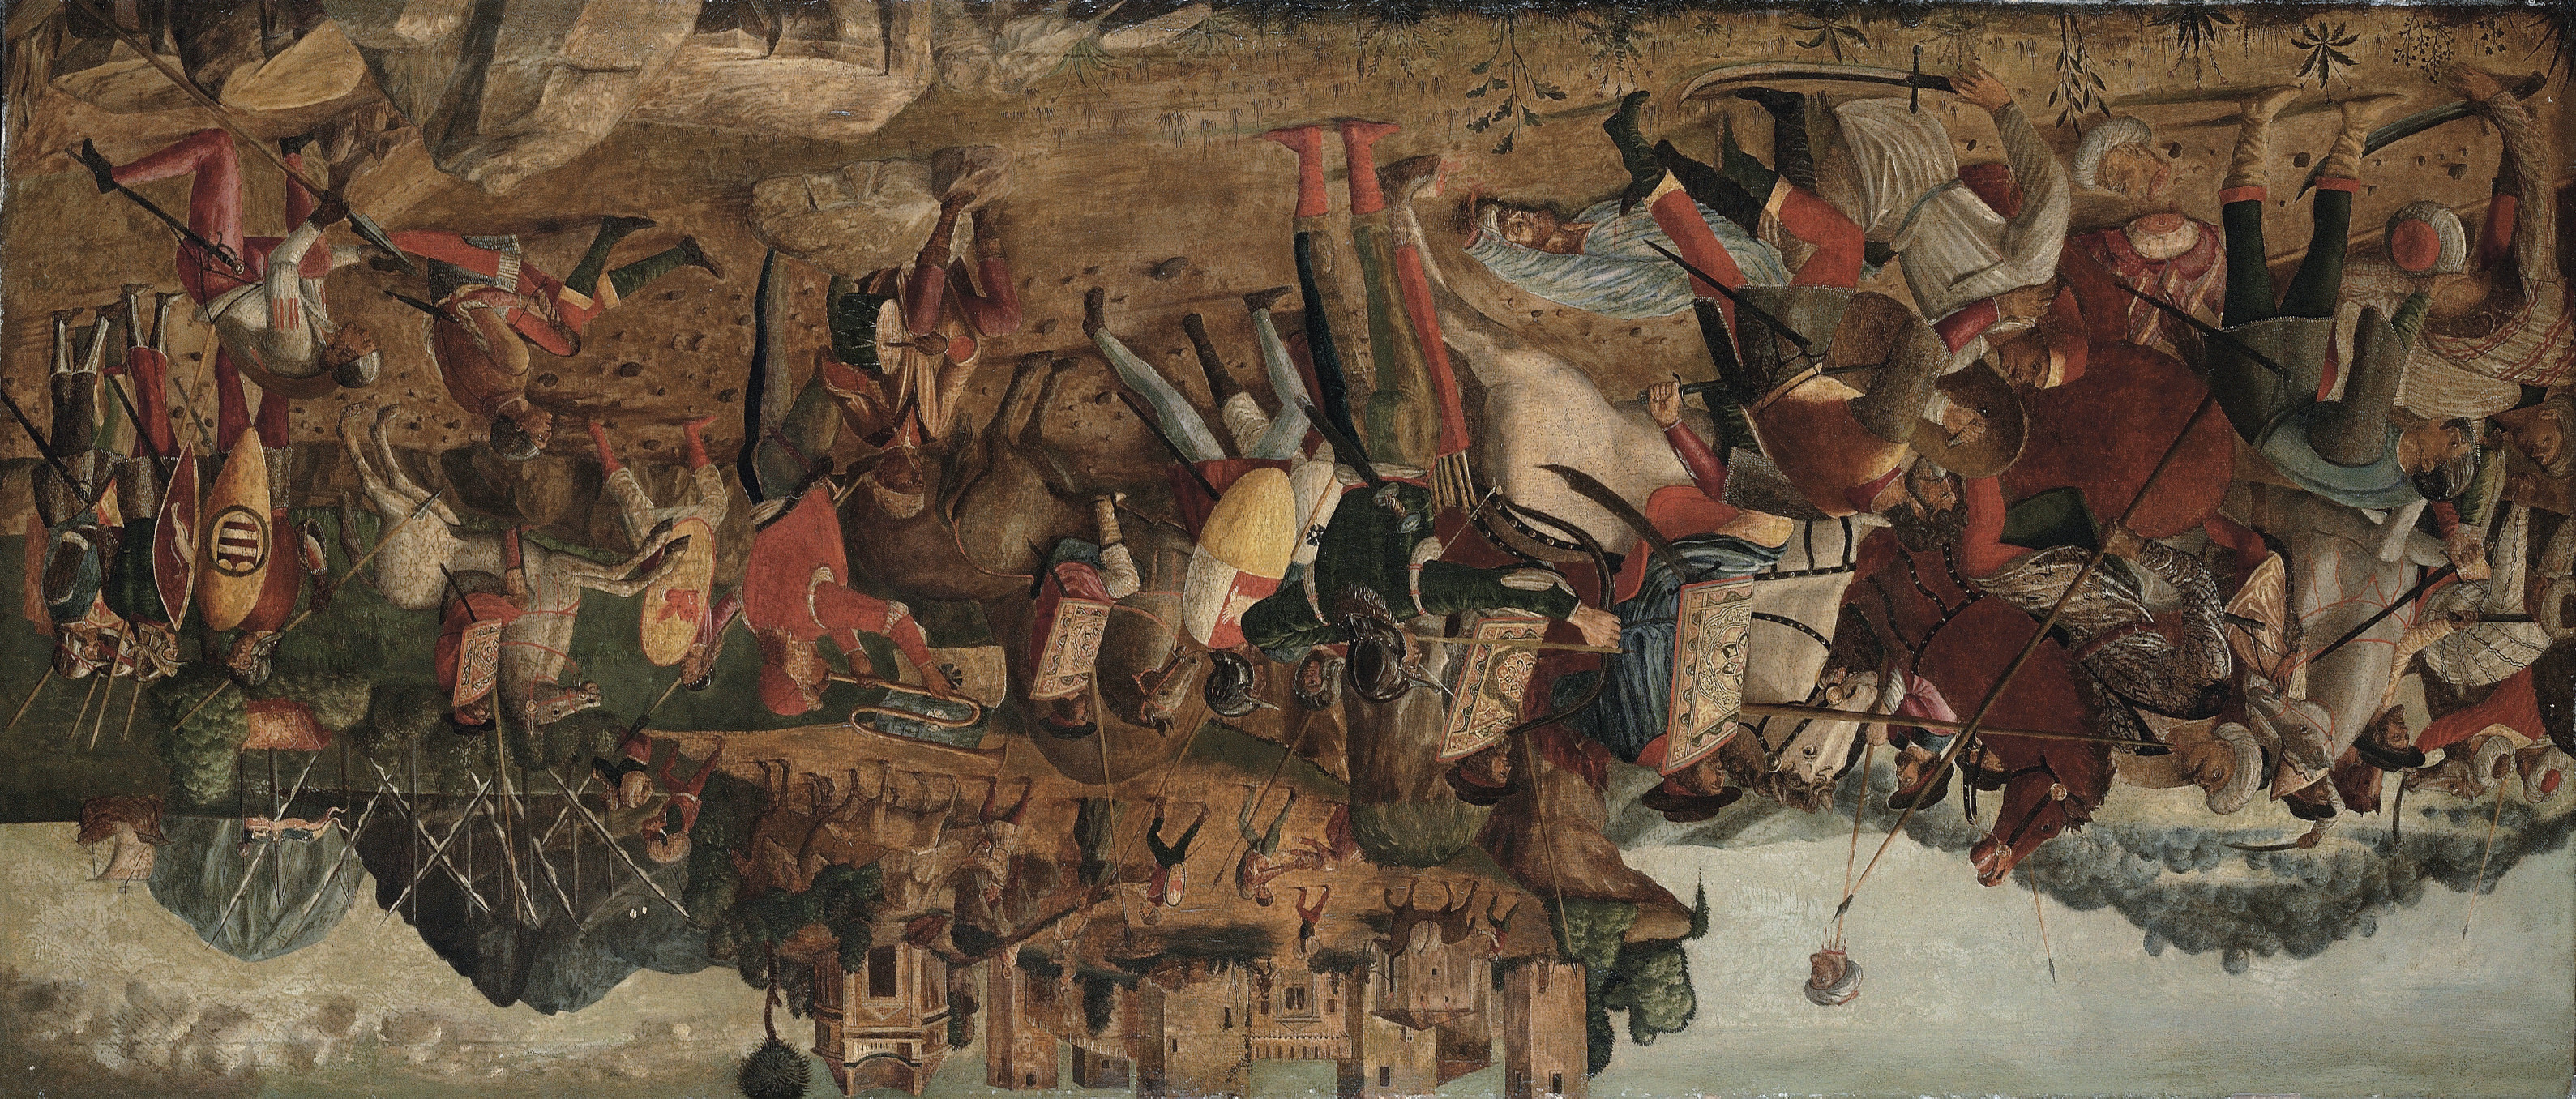 A cavalry skirmish between Christians and Turks